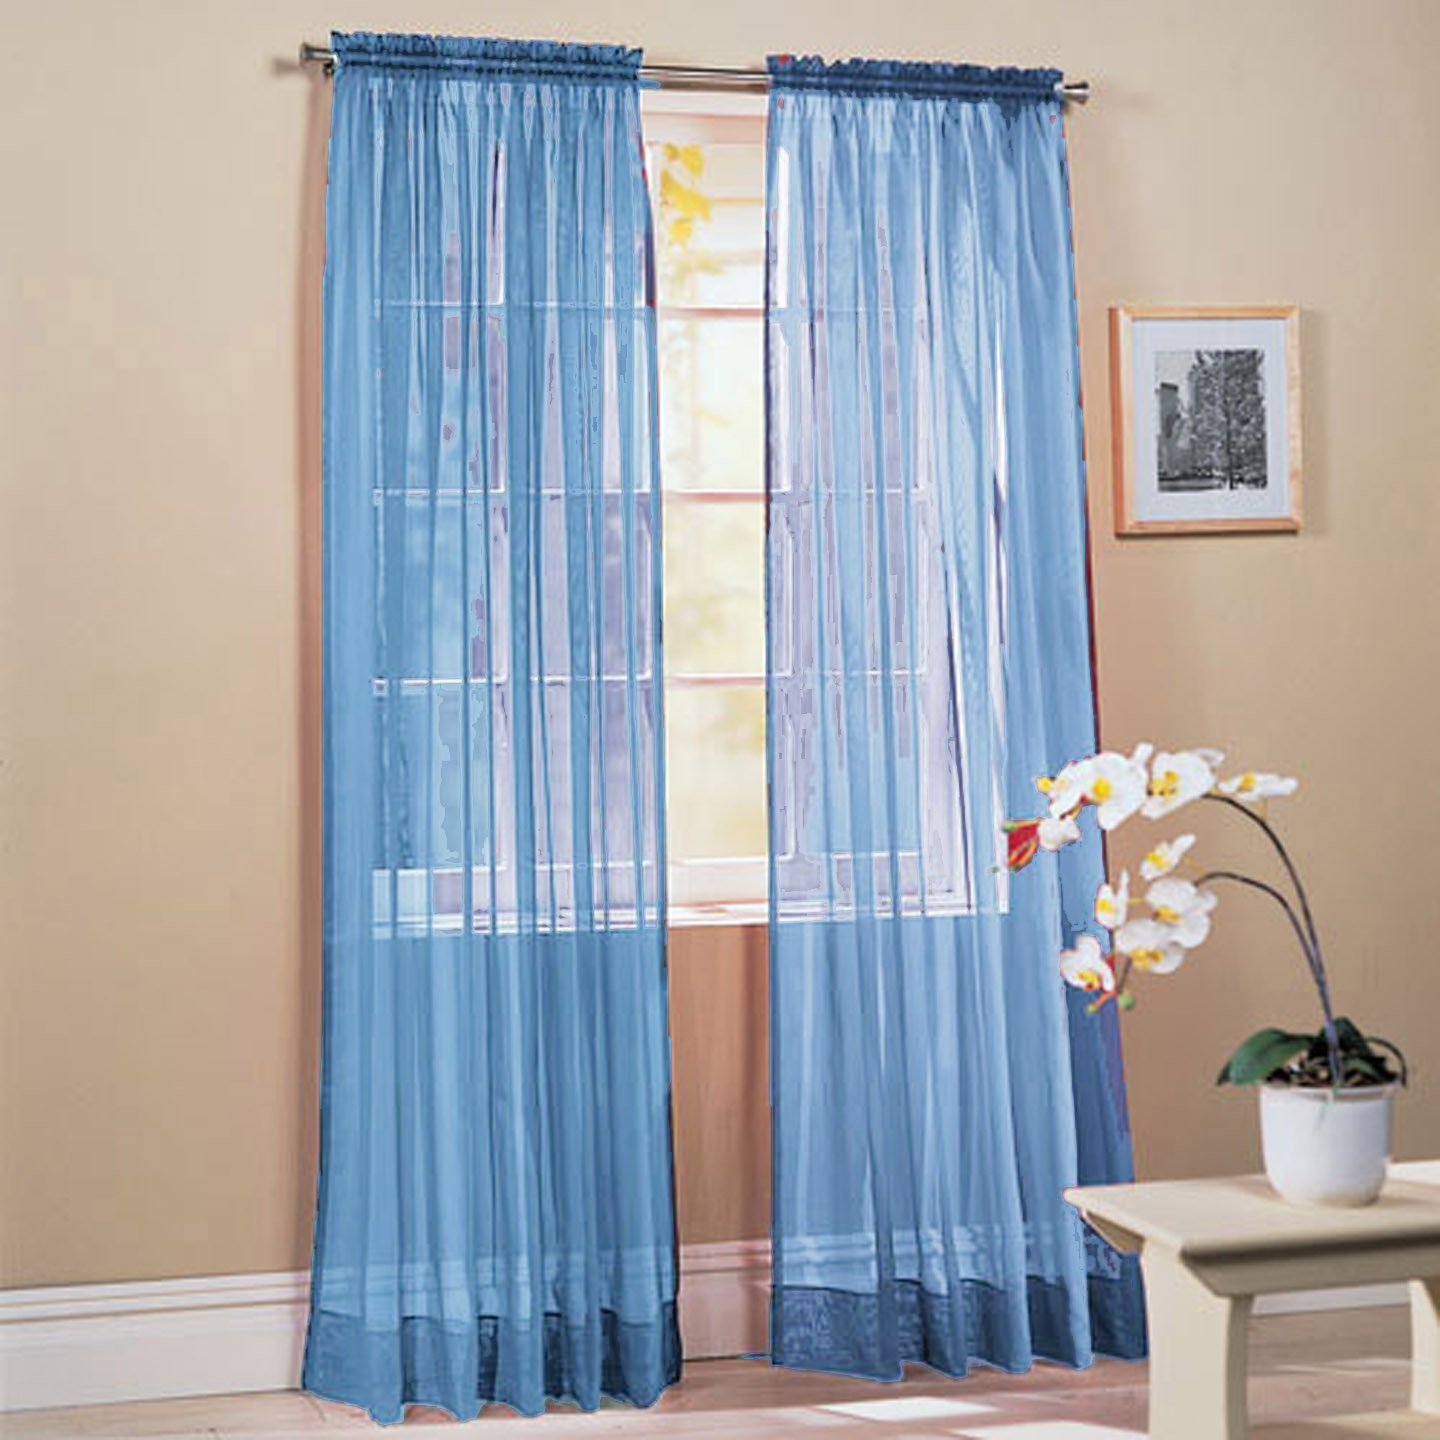 Amazon.com: 2 Piece Solid Sky Blue Sheer Window Curtains/drape ... for Blue And White Curtains For Living Room  545xkb